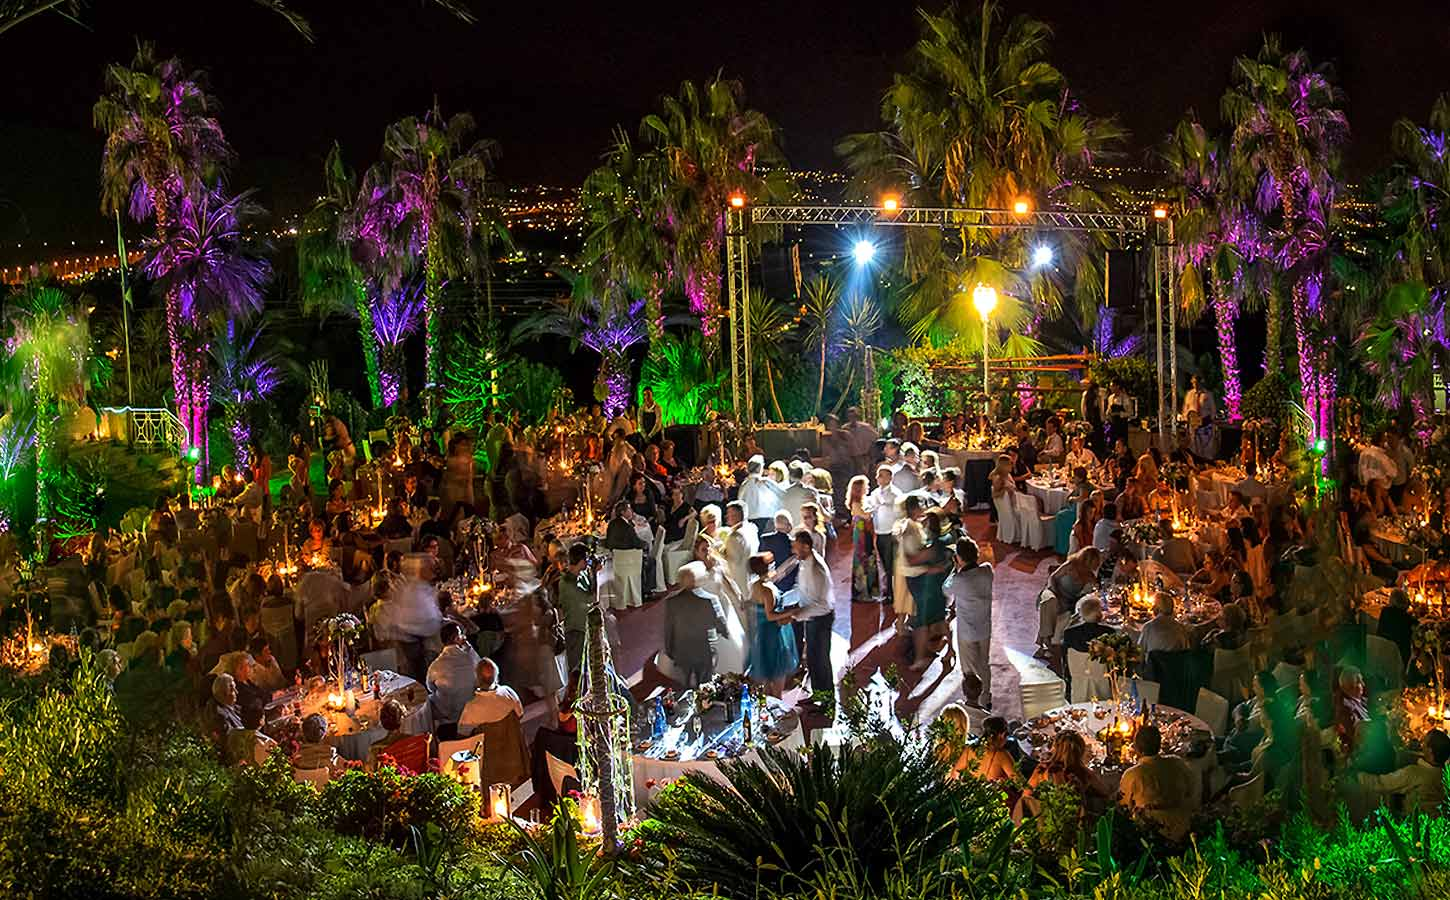 dance-party-at-a-wedding-with-diamond-events-planning-company-services-in-greece